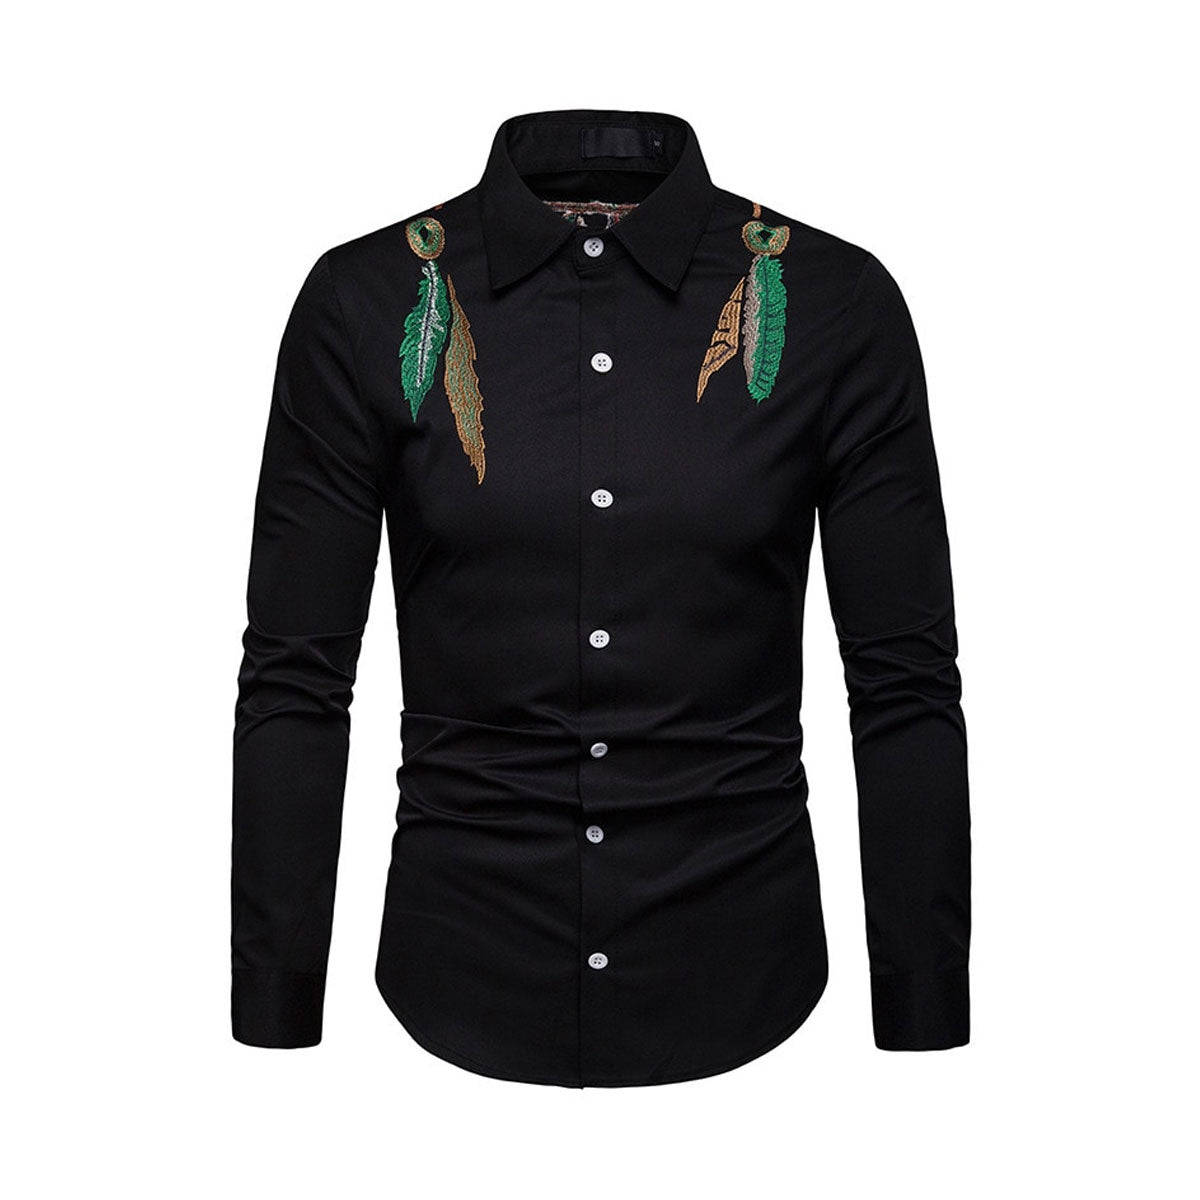 Embroidered Long-Sleeve Turned Neck Collar Black & White Shirt for Men